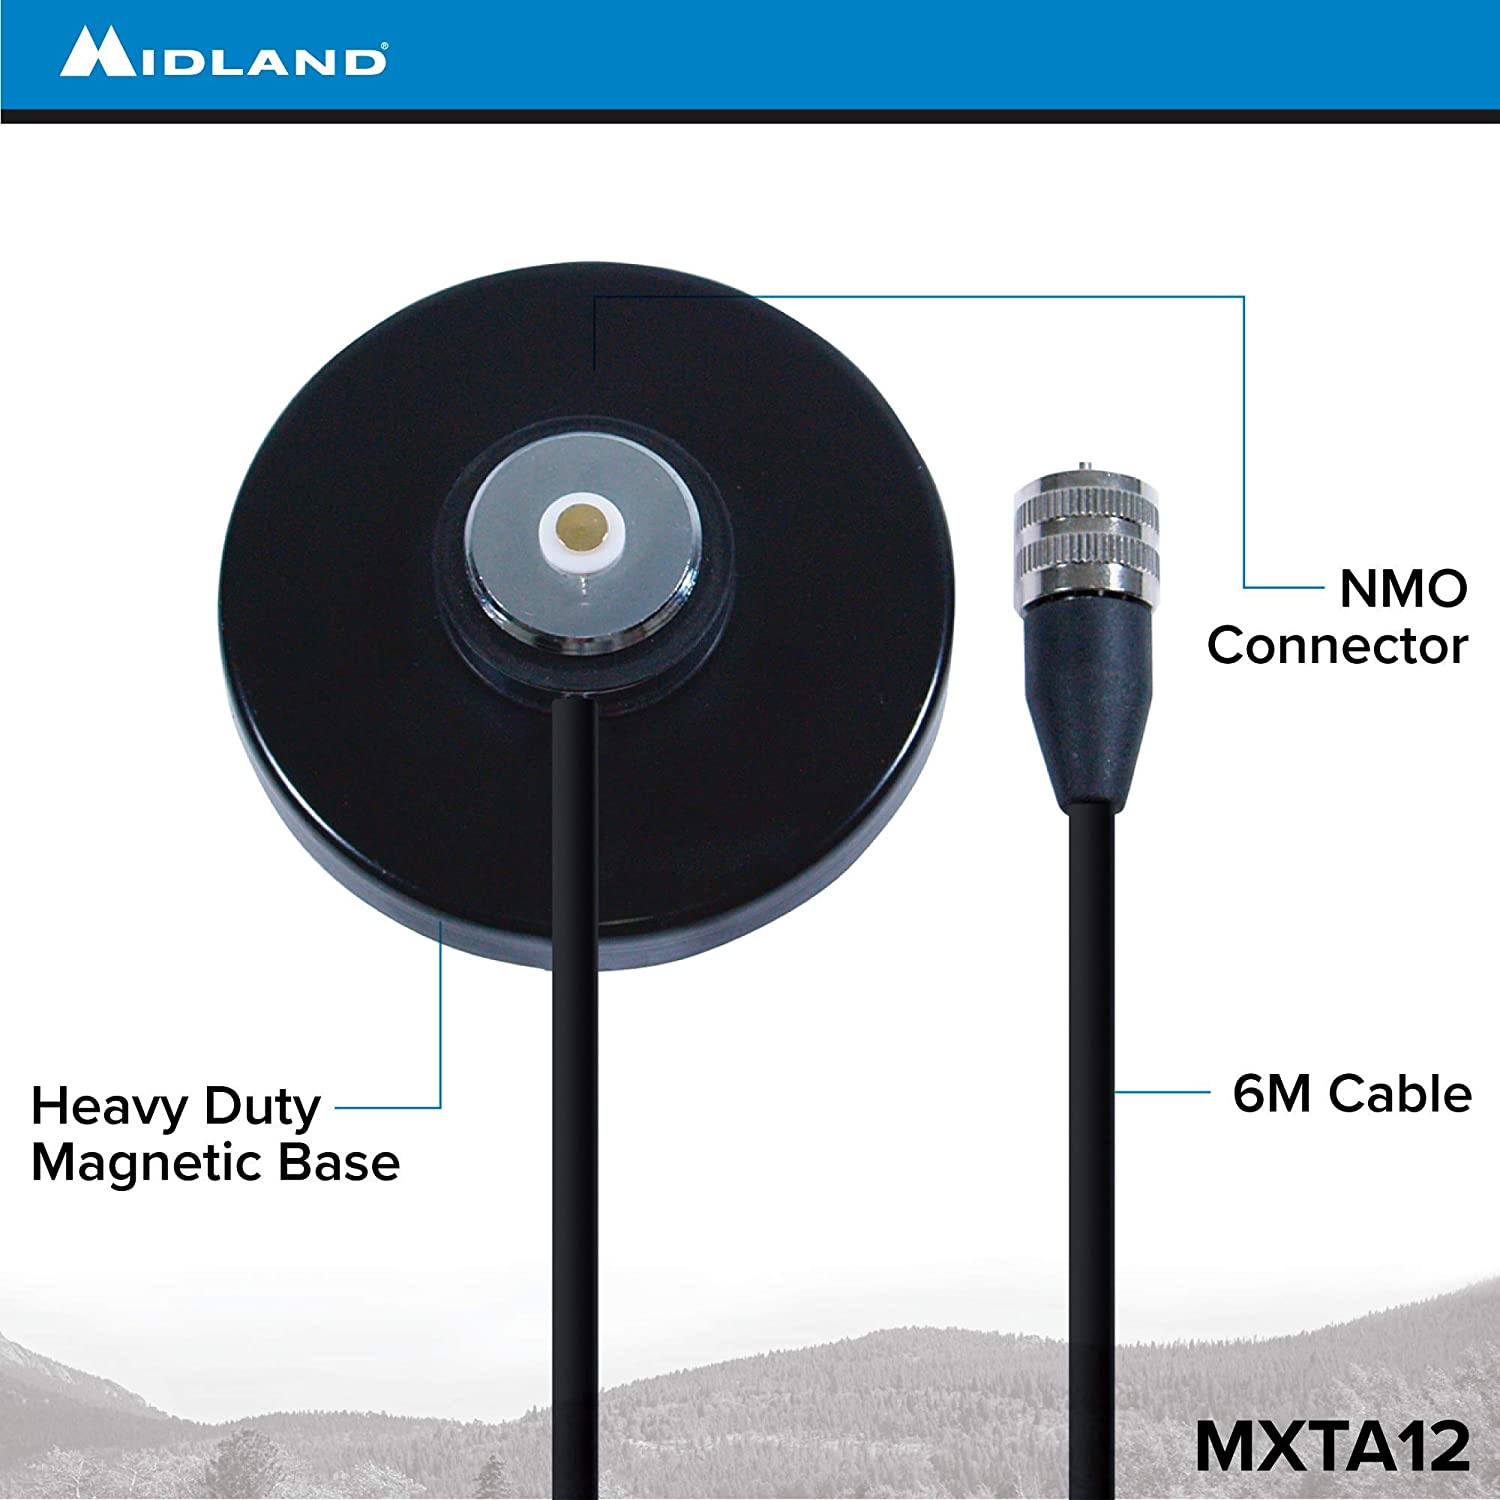 MXTA12 Antenna Mag Mount with NMO Connector and 12 Cable MXT115 MXT275 Works with Midland MicroMobile MXT105 MXT400 Midland